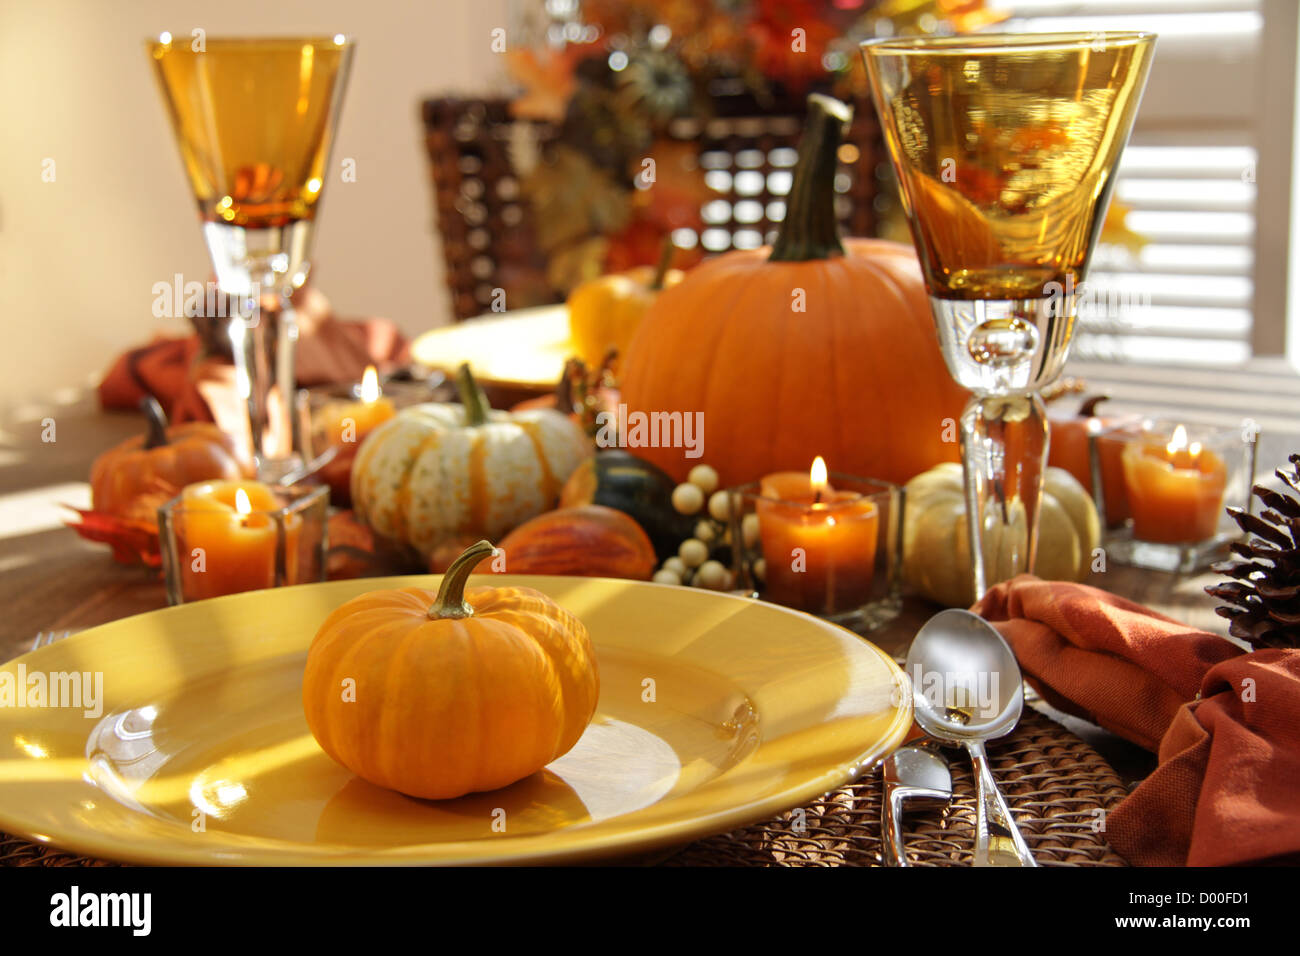 Place settings ready for Thanksgiving - Stock Image